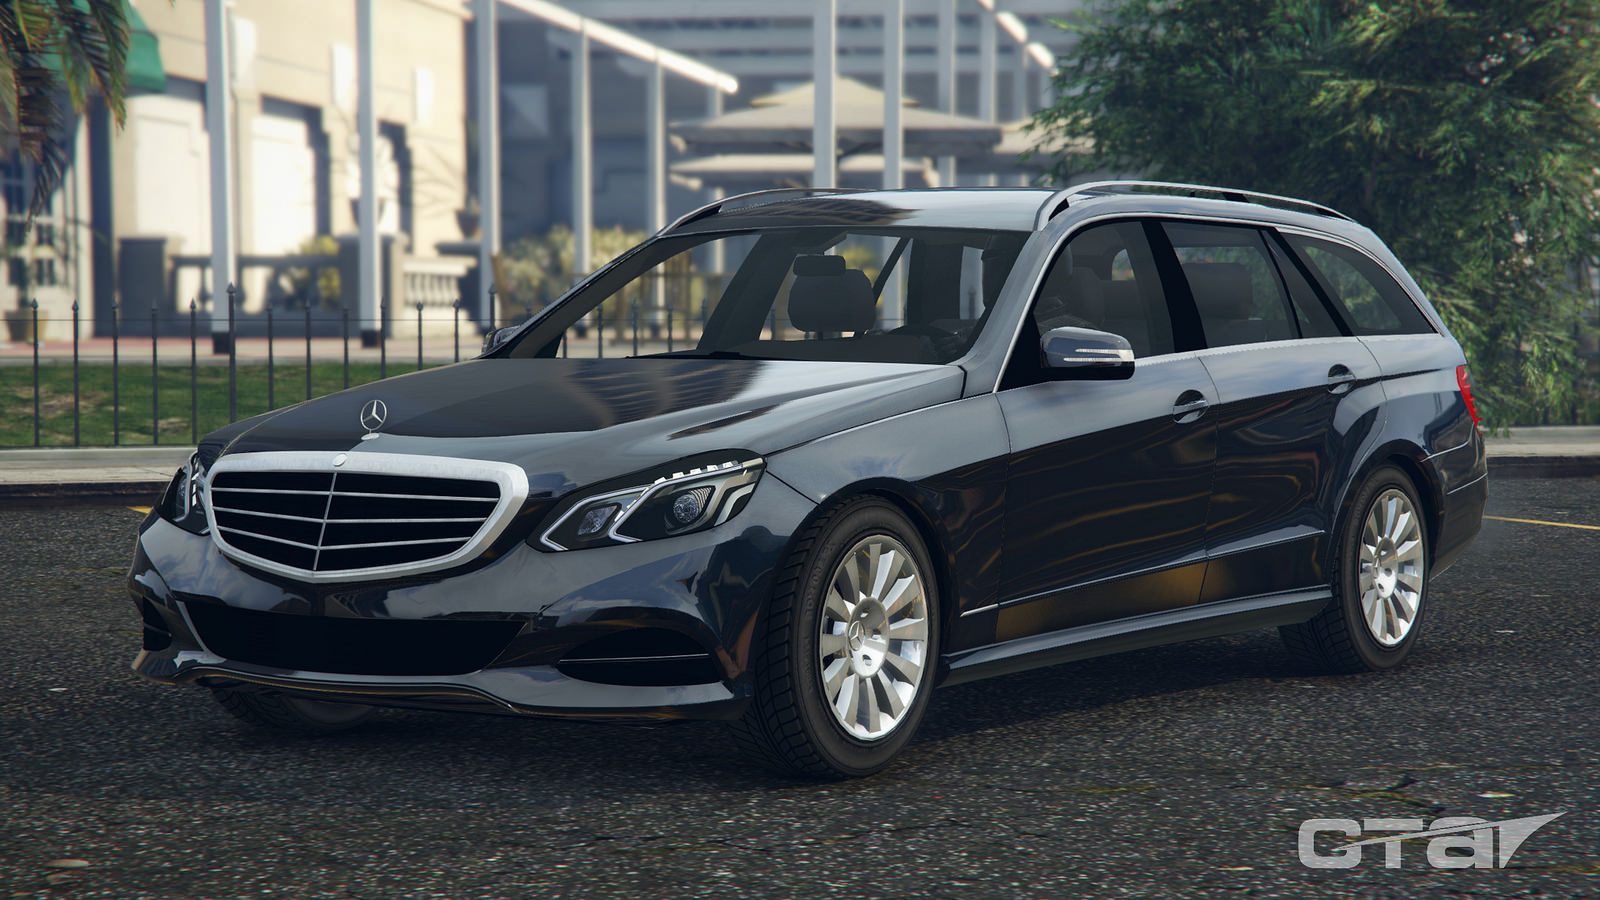 2015 mercedes benz e klasse t modell estate gta5. Black Bedroom Furniture Sets. Home Design Ideas